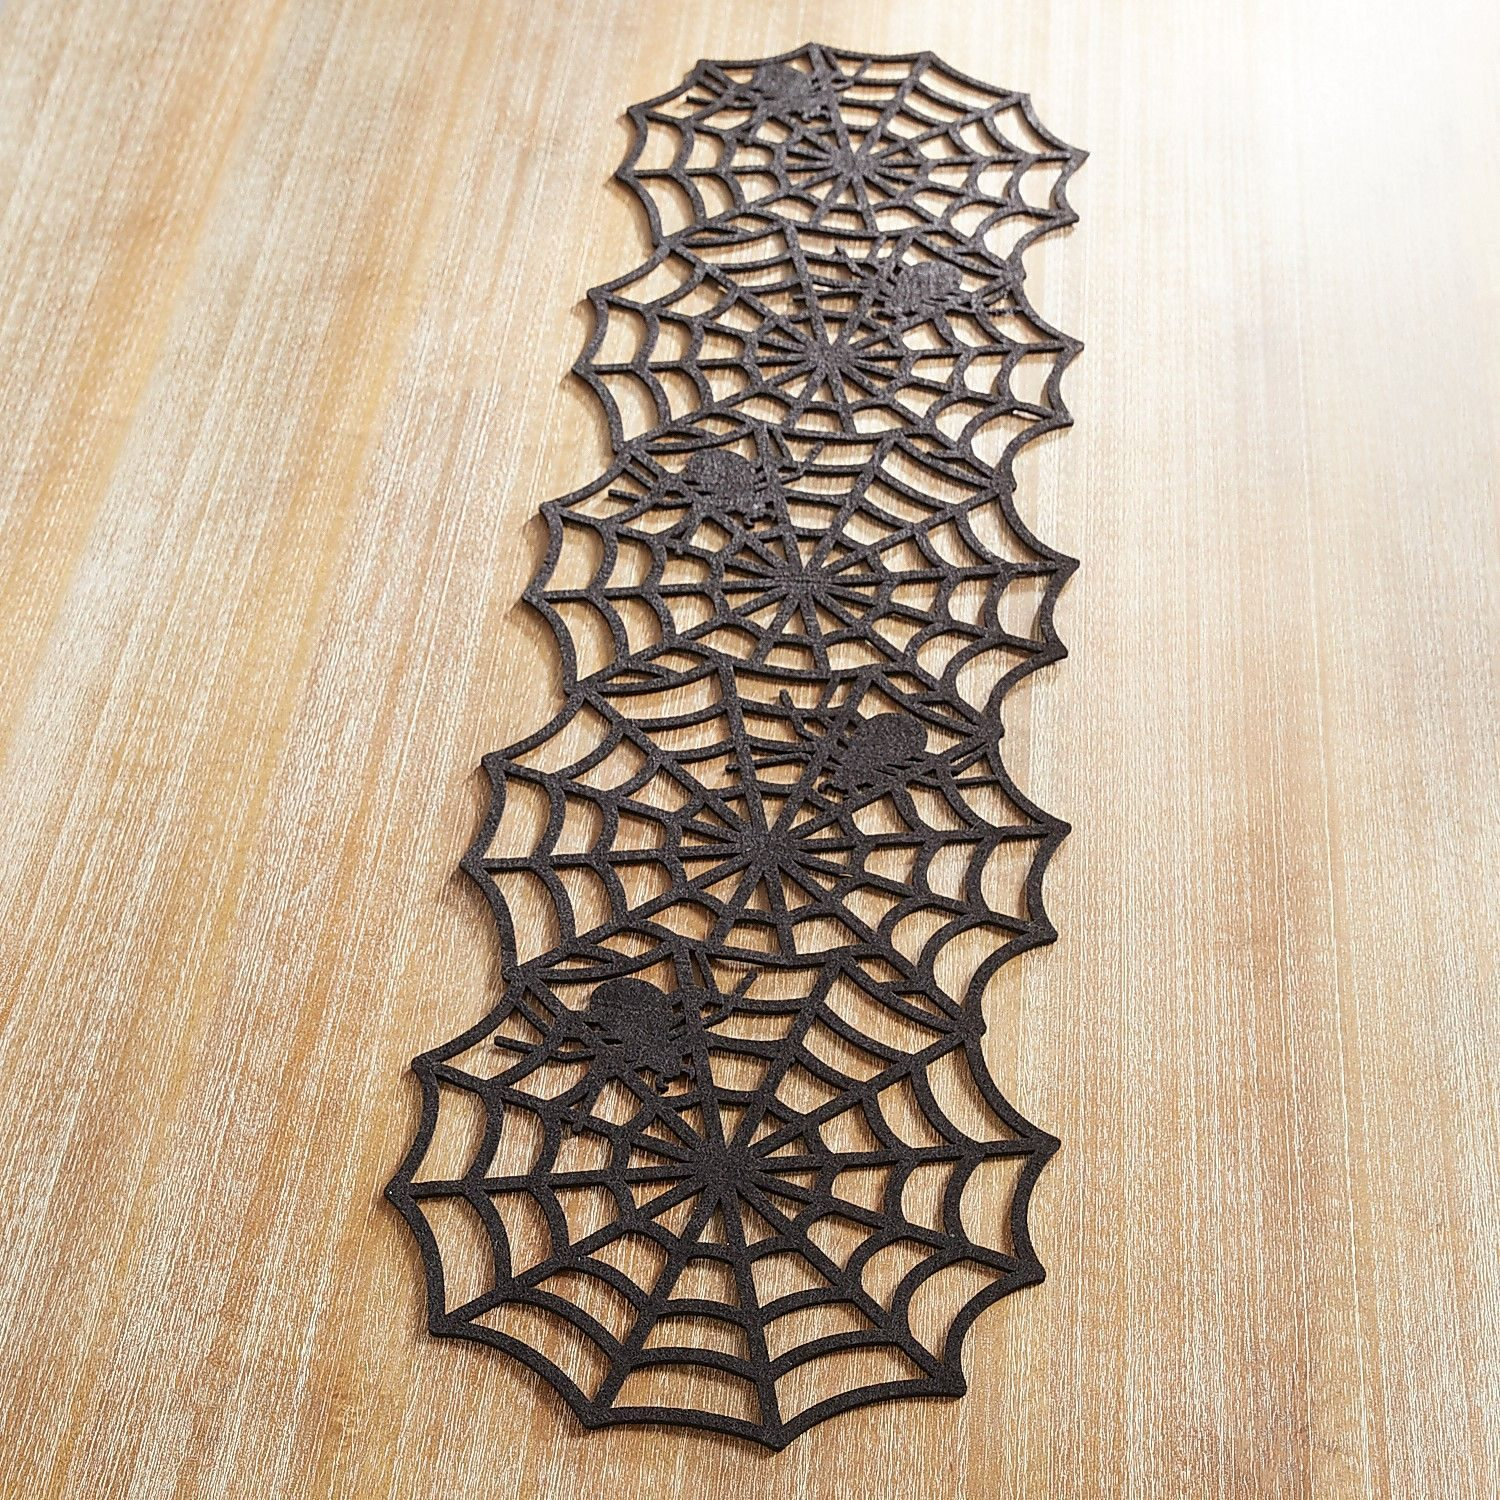 d247a540332 Pier 1 s New Halloween Decorations are Spooky and Sweet